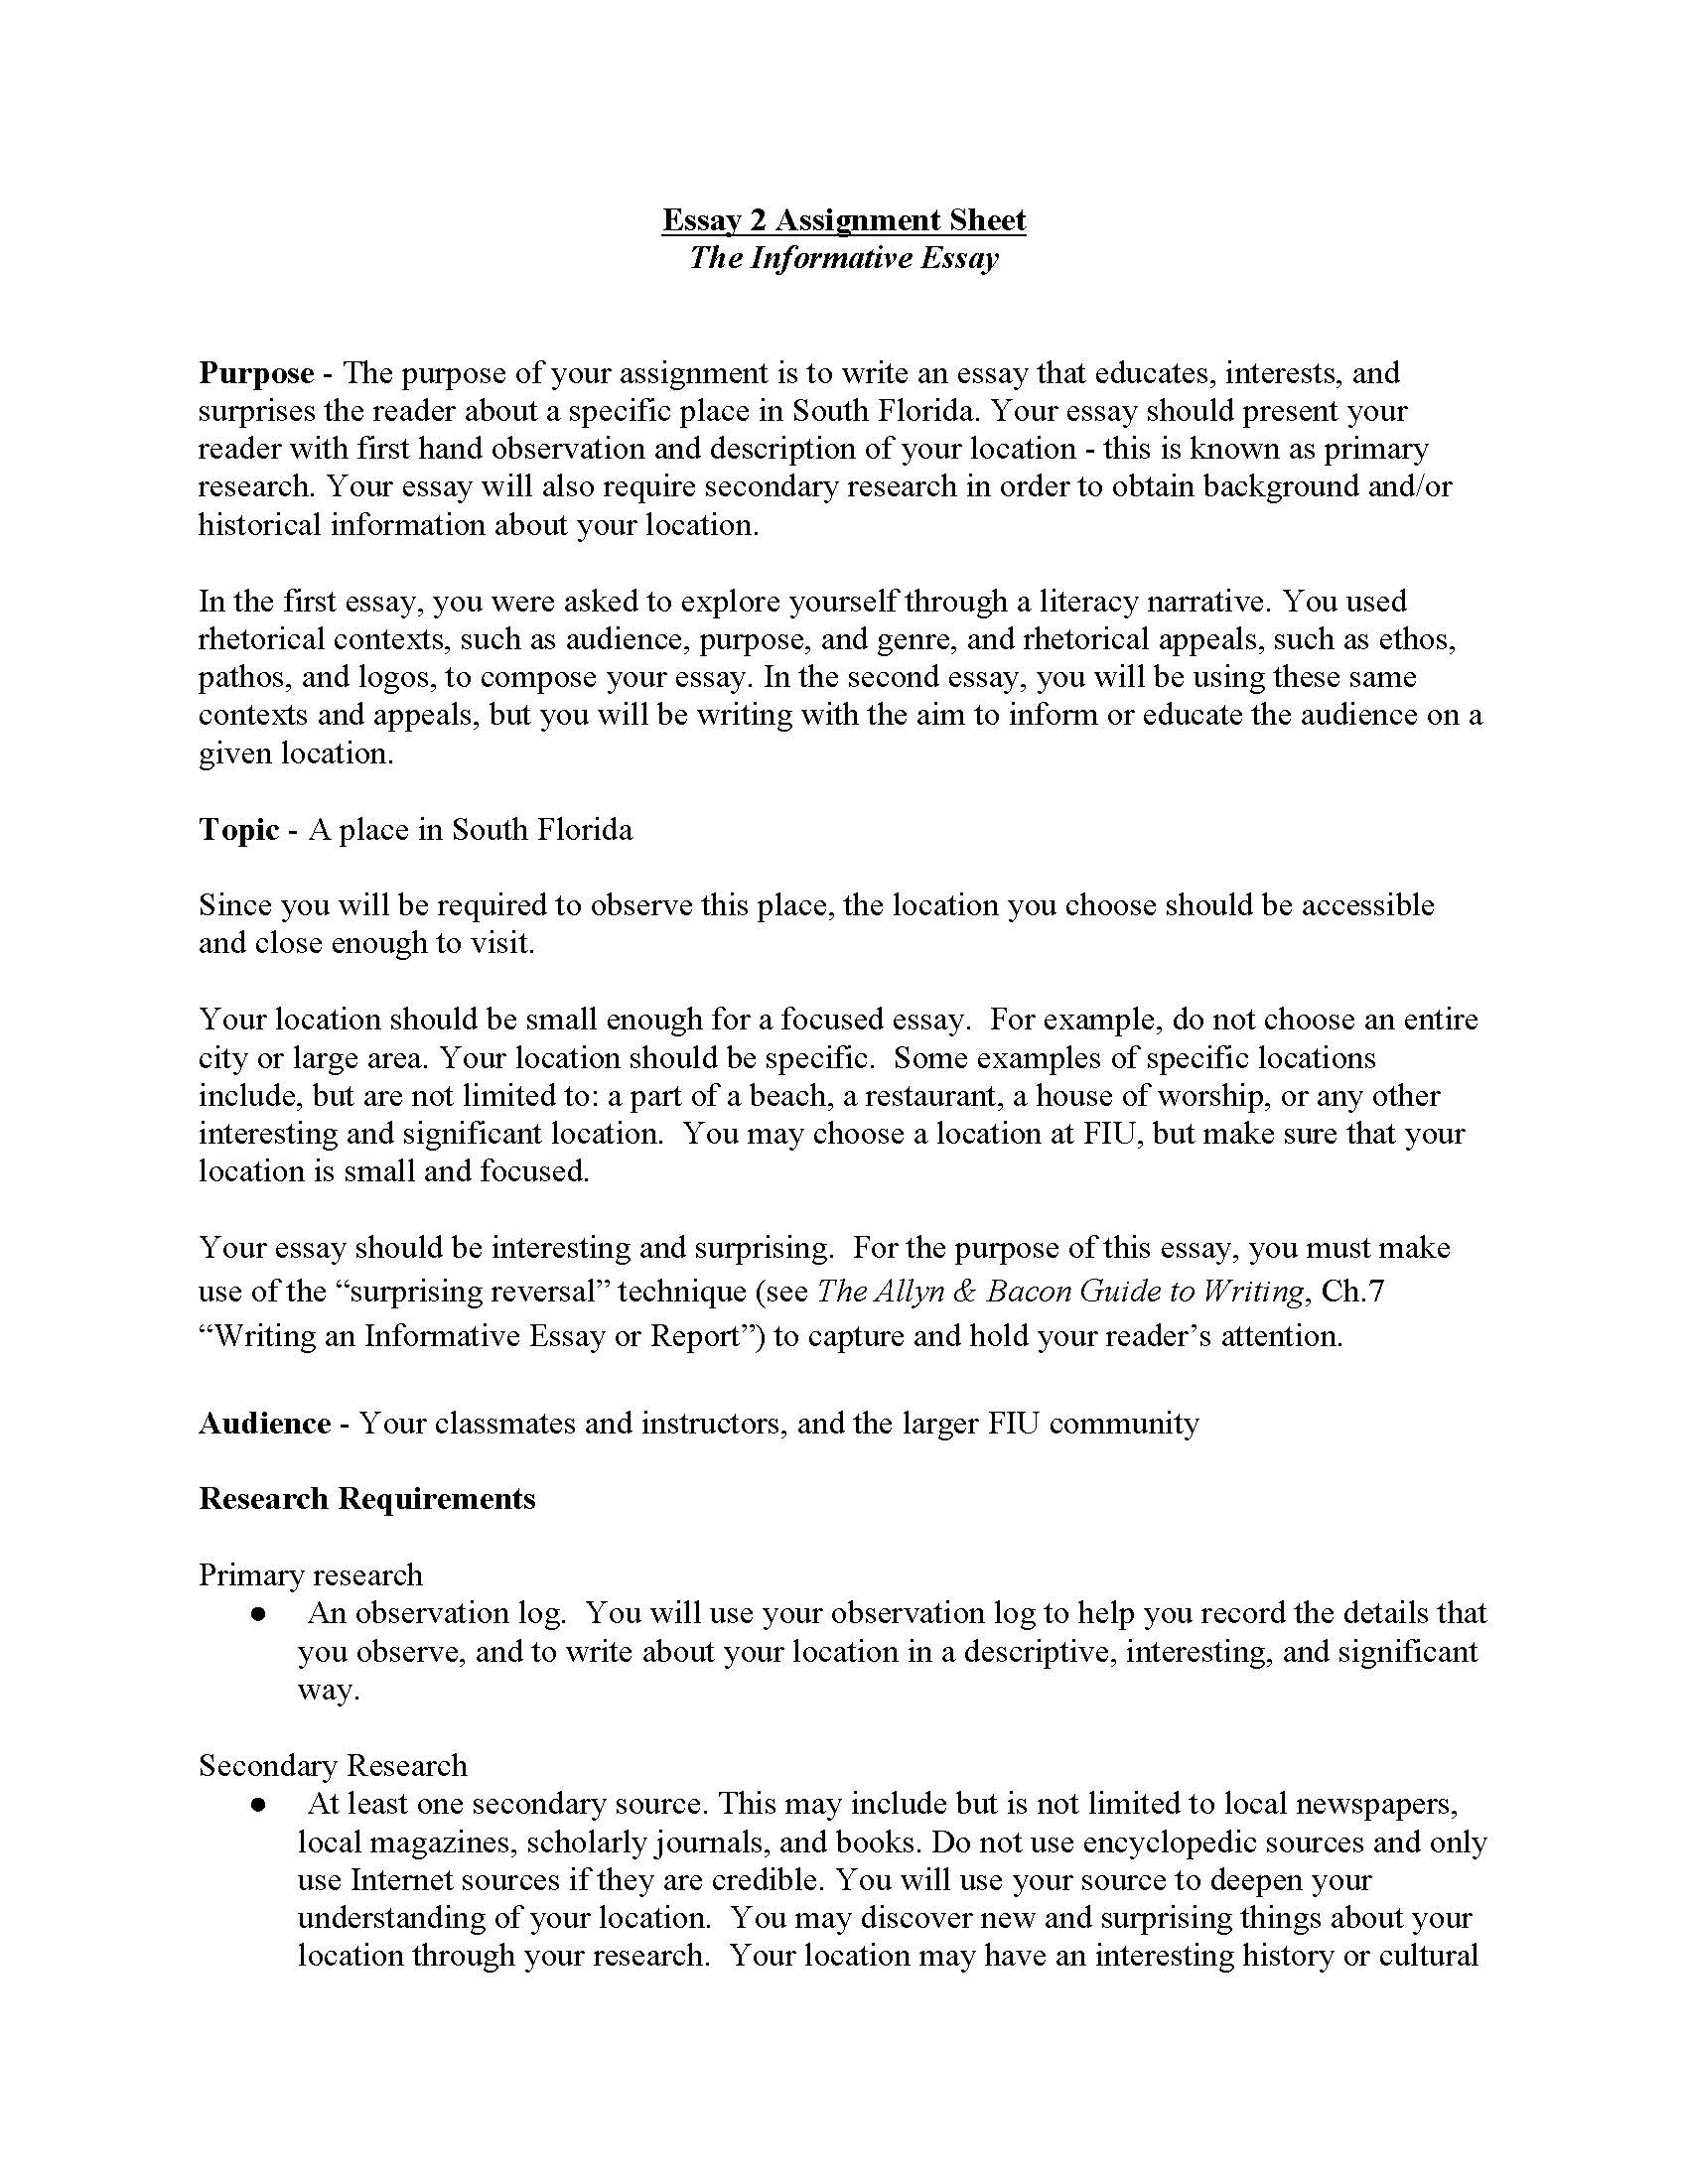 008 Informative Essay Unit Assignment Page 1 Example Informational Unbelievable Topics For 5th Grade Expository 4th Full